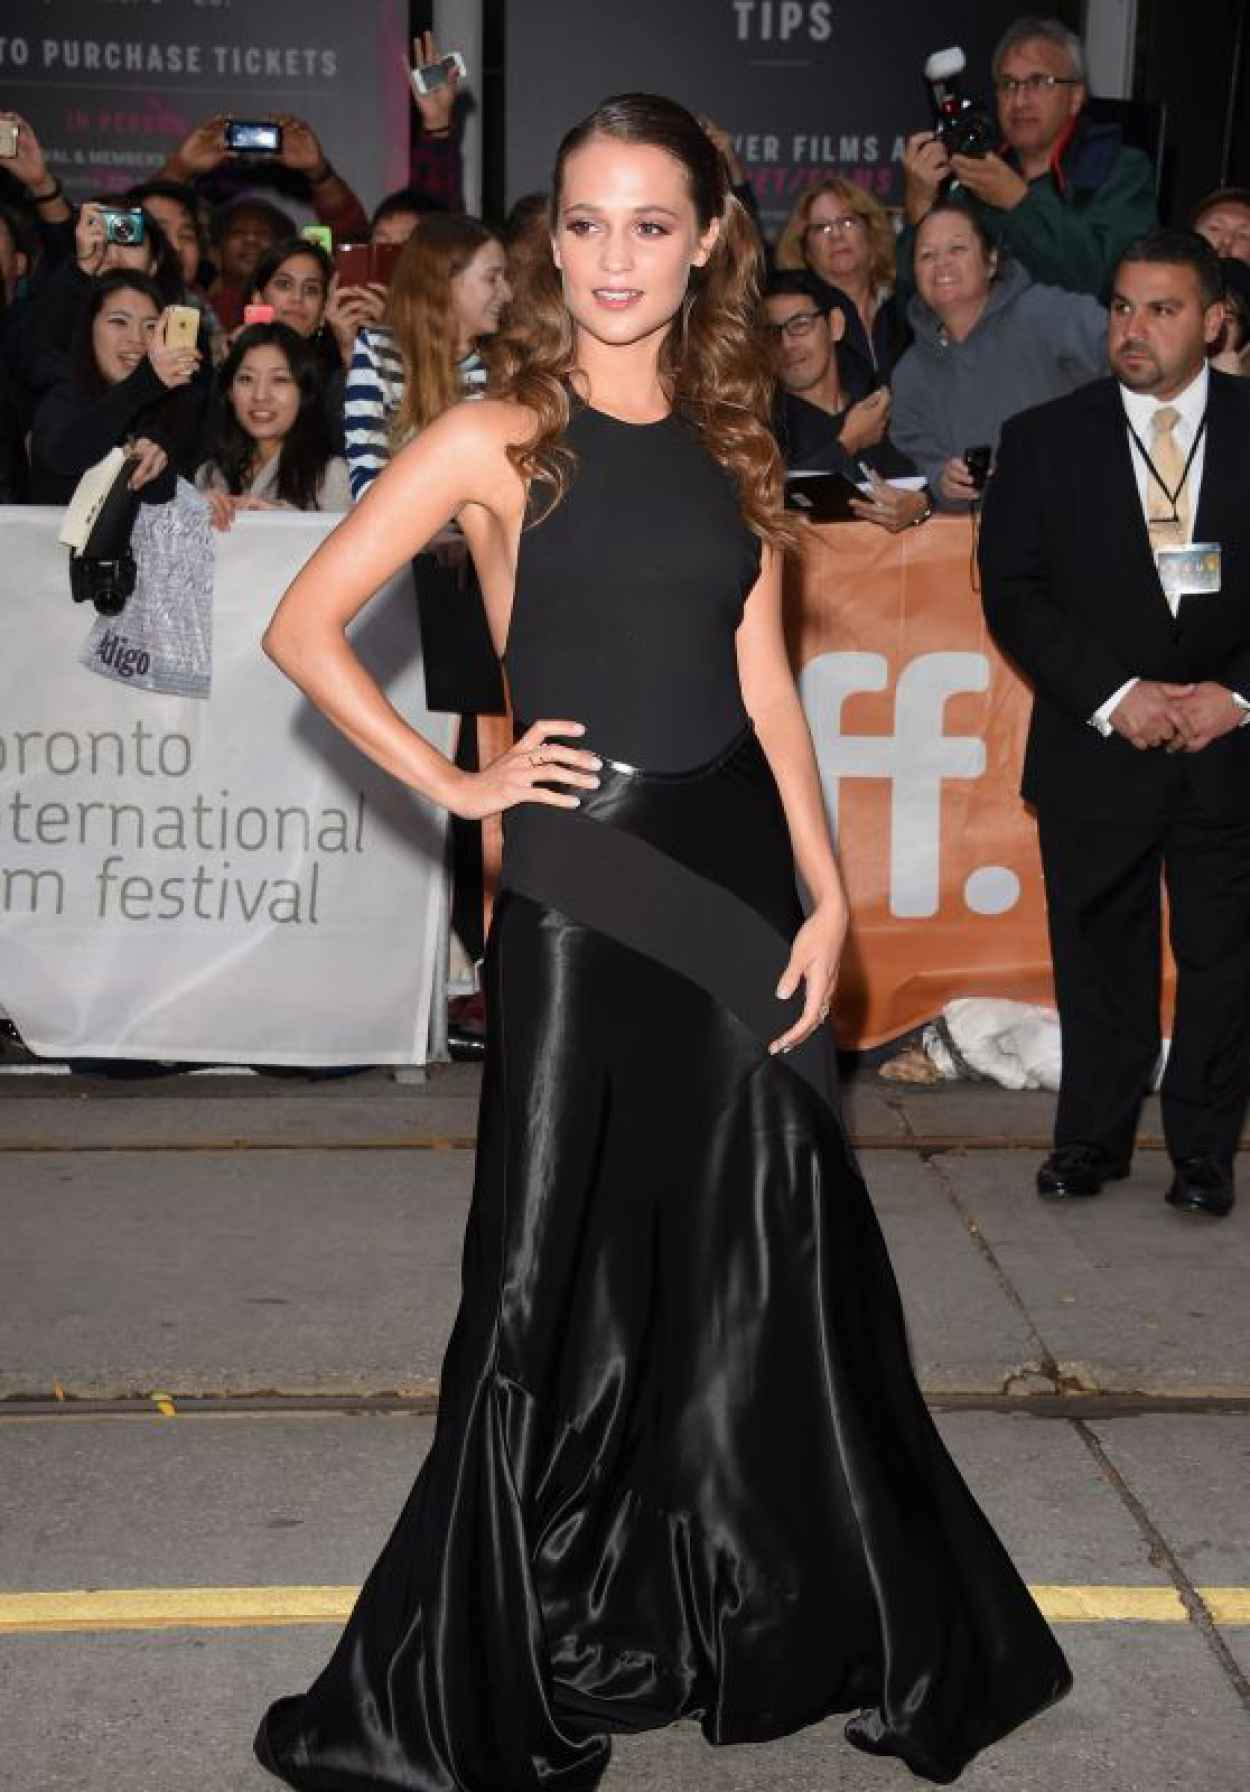 Alicia Vikander - The Danish Girl Premiere at Toronto International Film Festival-1